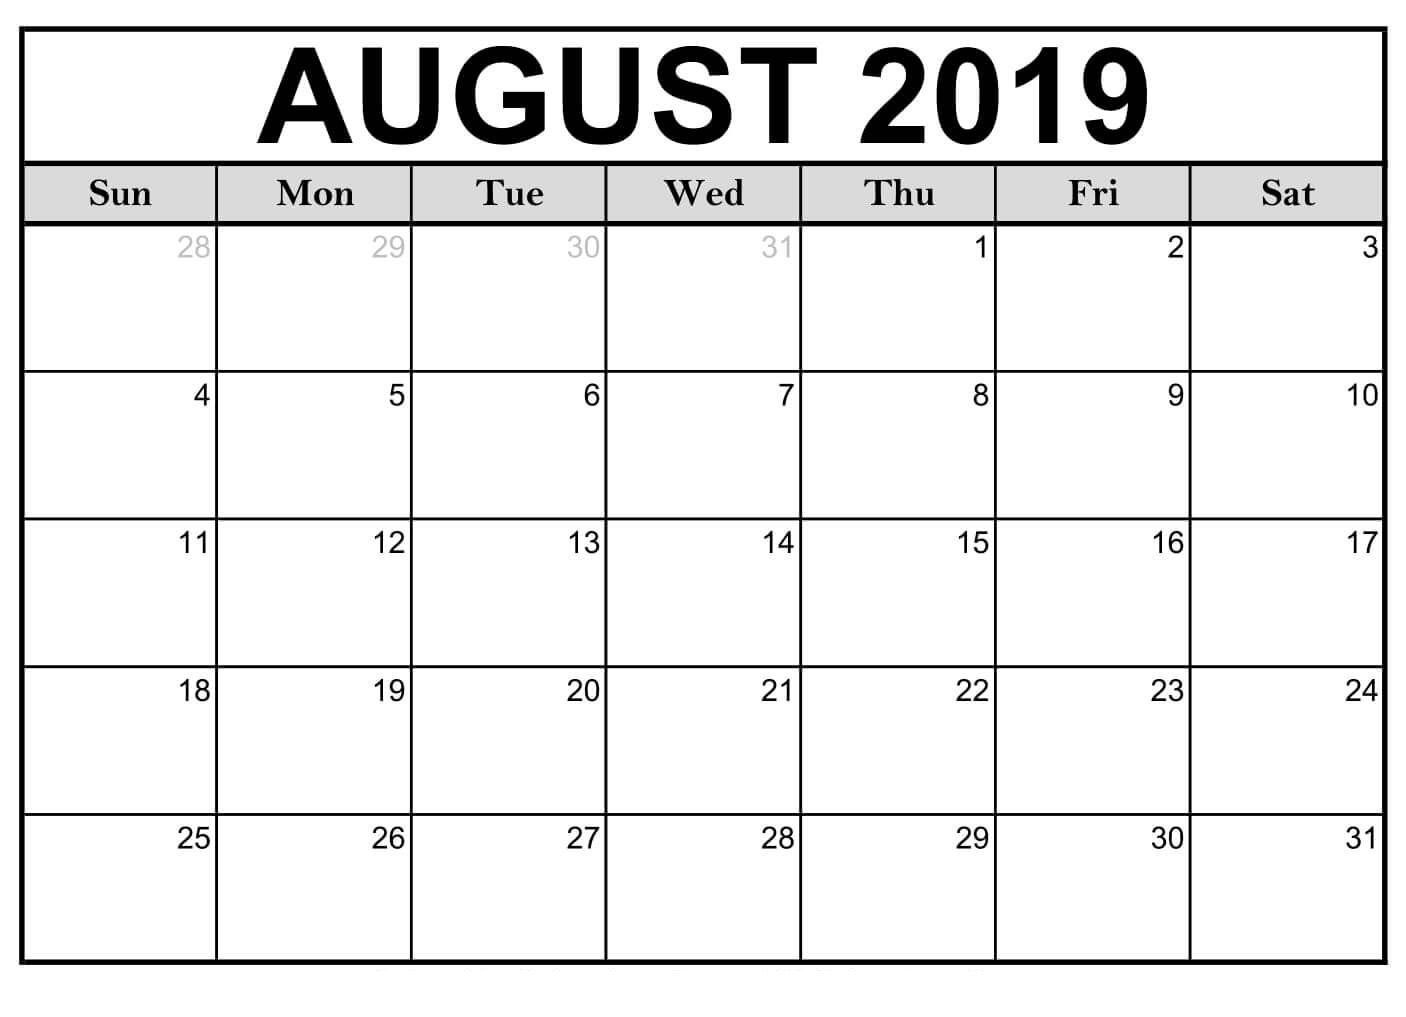 June July August 2019 Calendar Printable.Printable August 2019 Calendar Pdf Free August 2019 Calendar